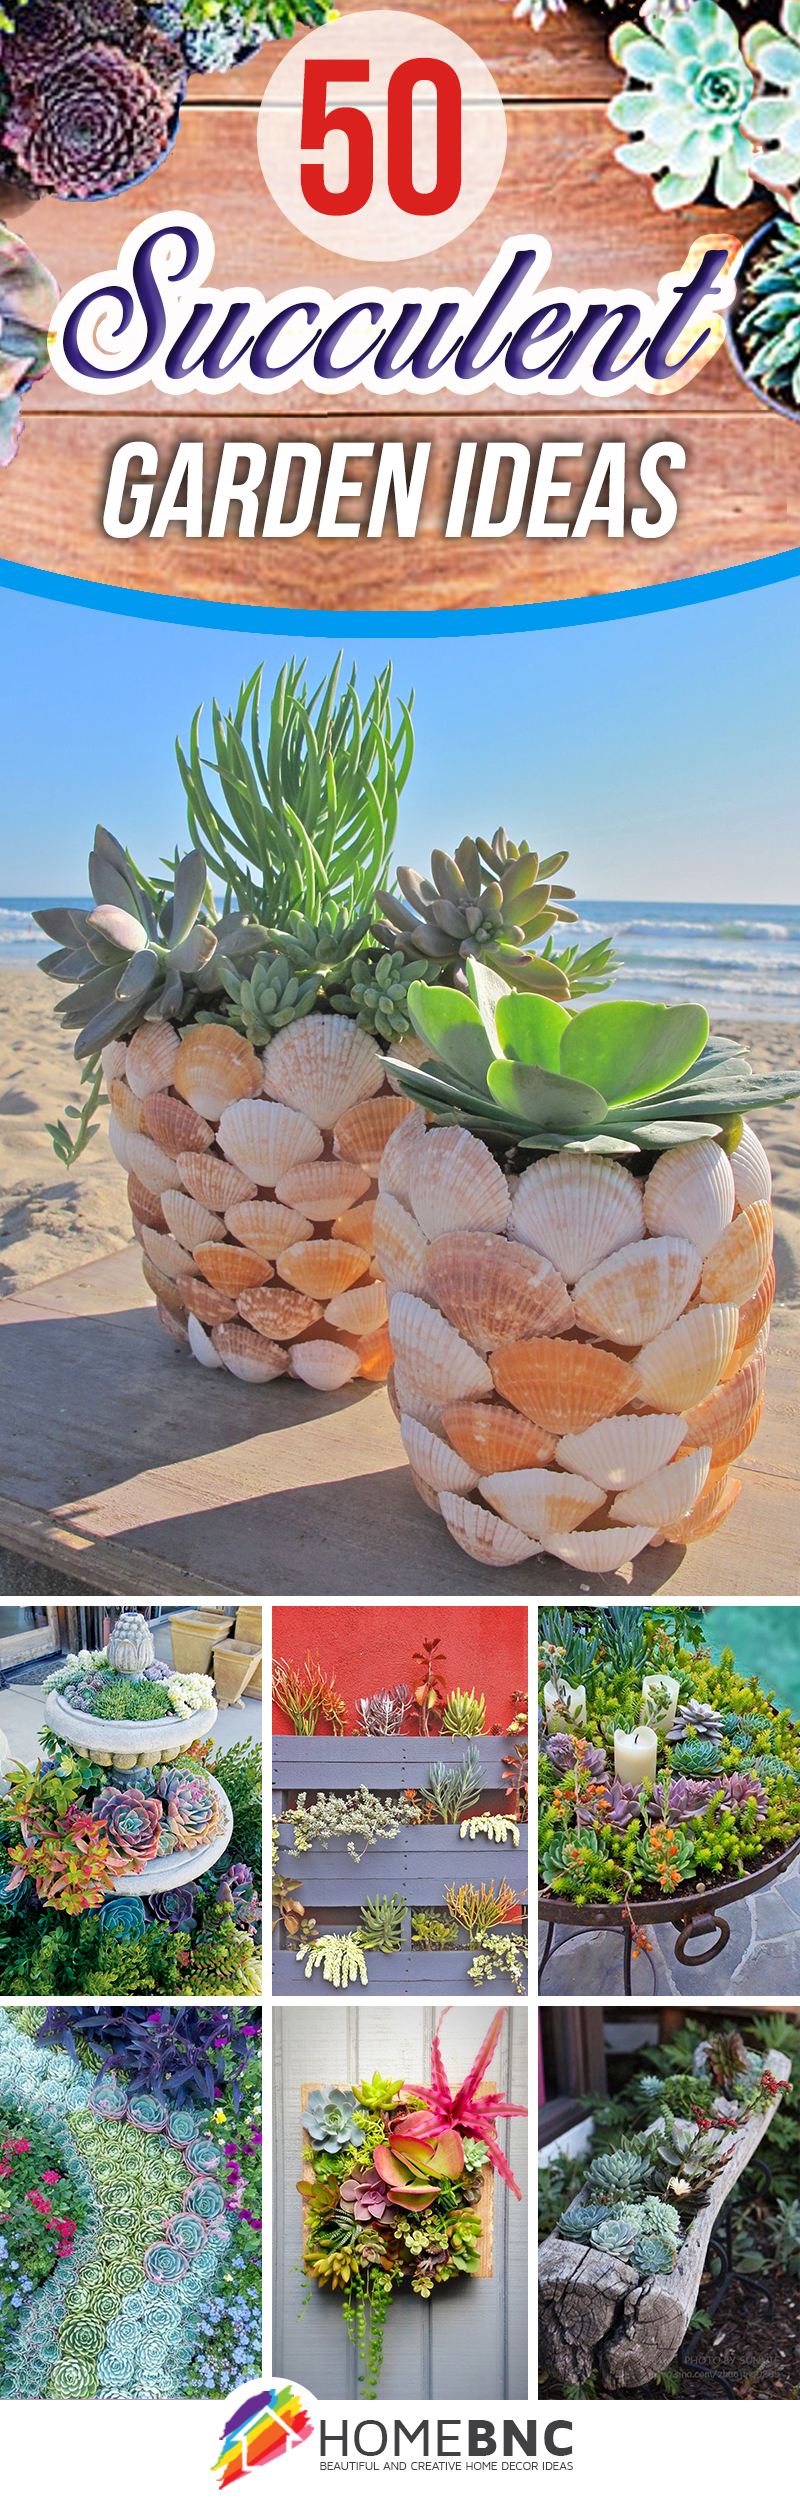 Best designs for succulent gardening